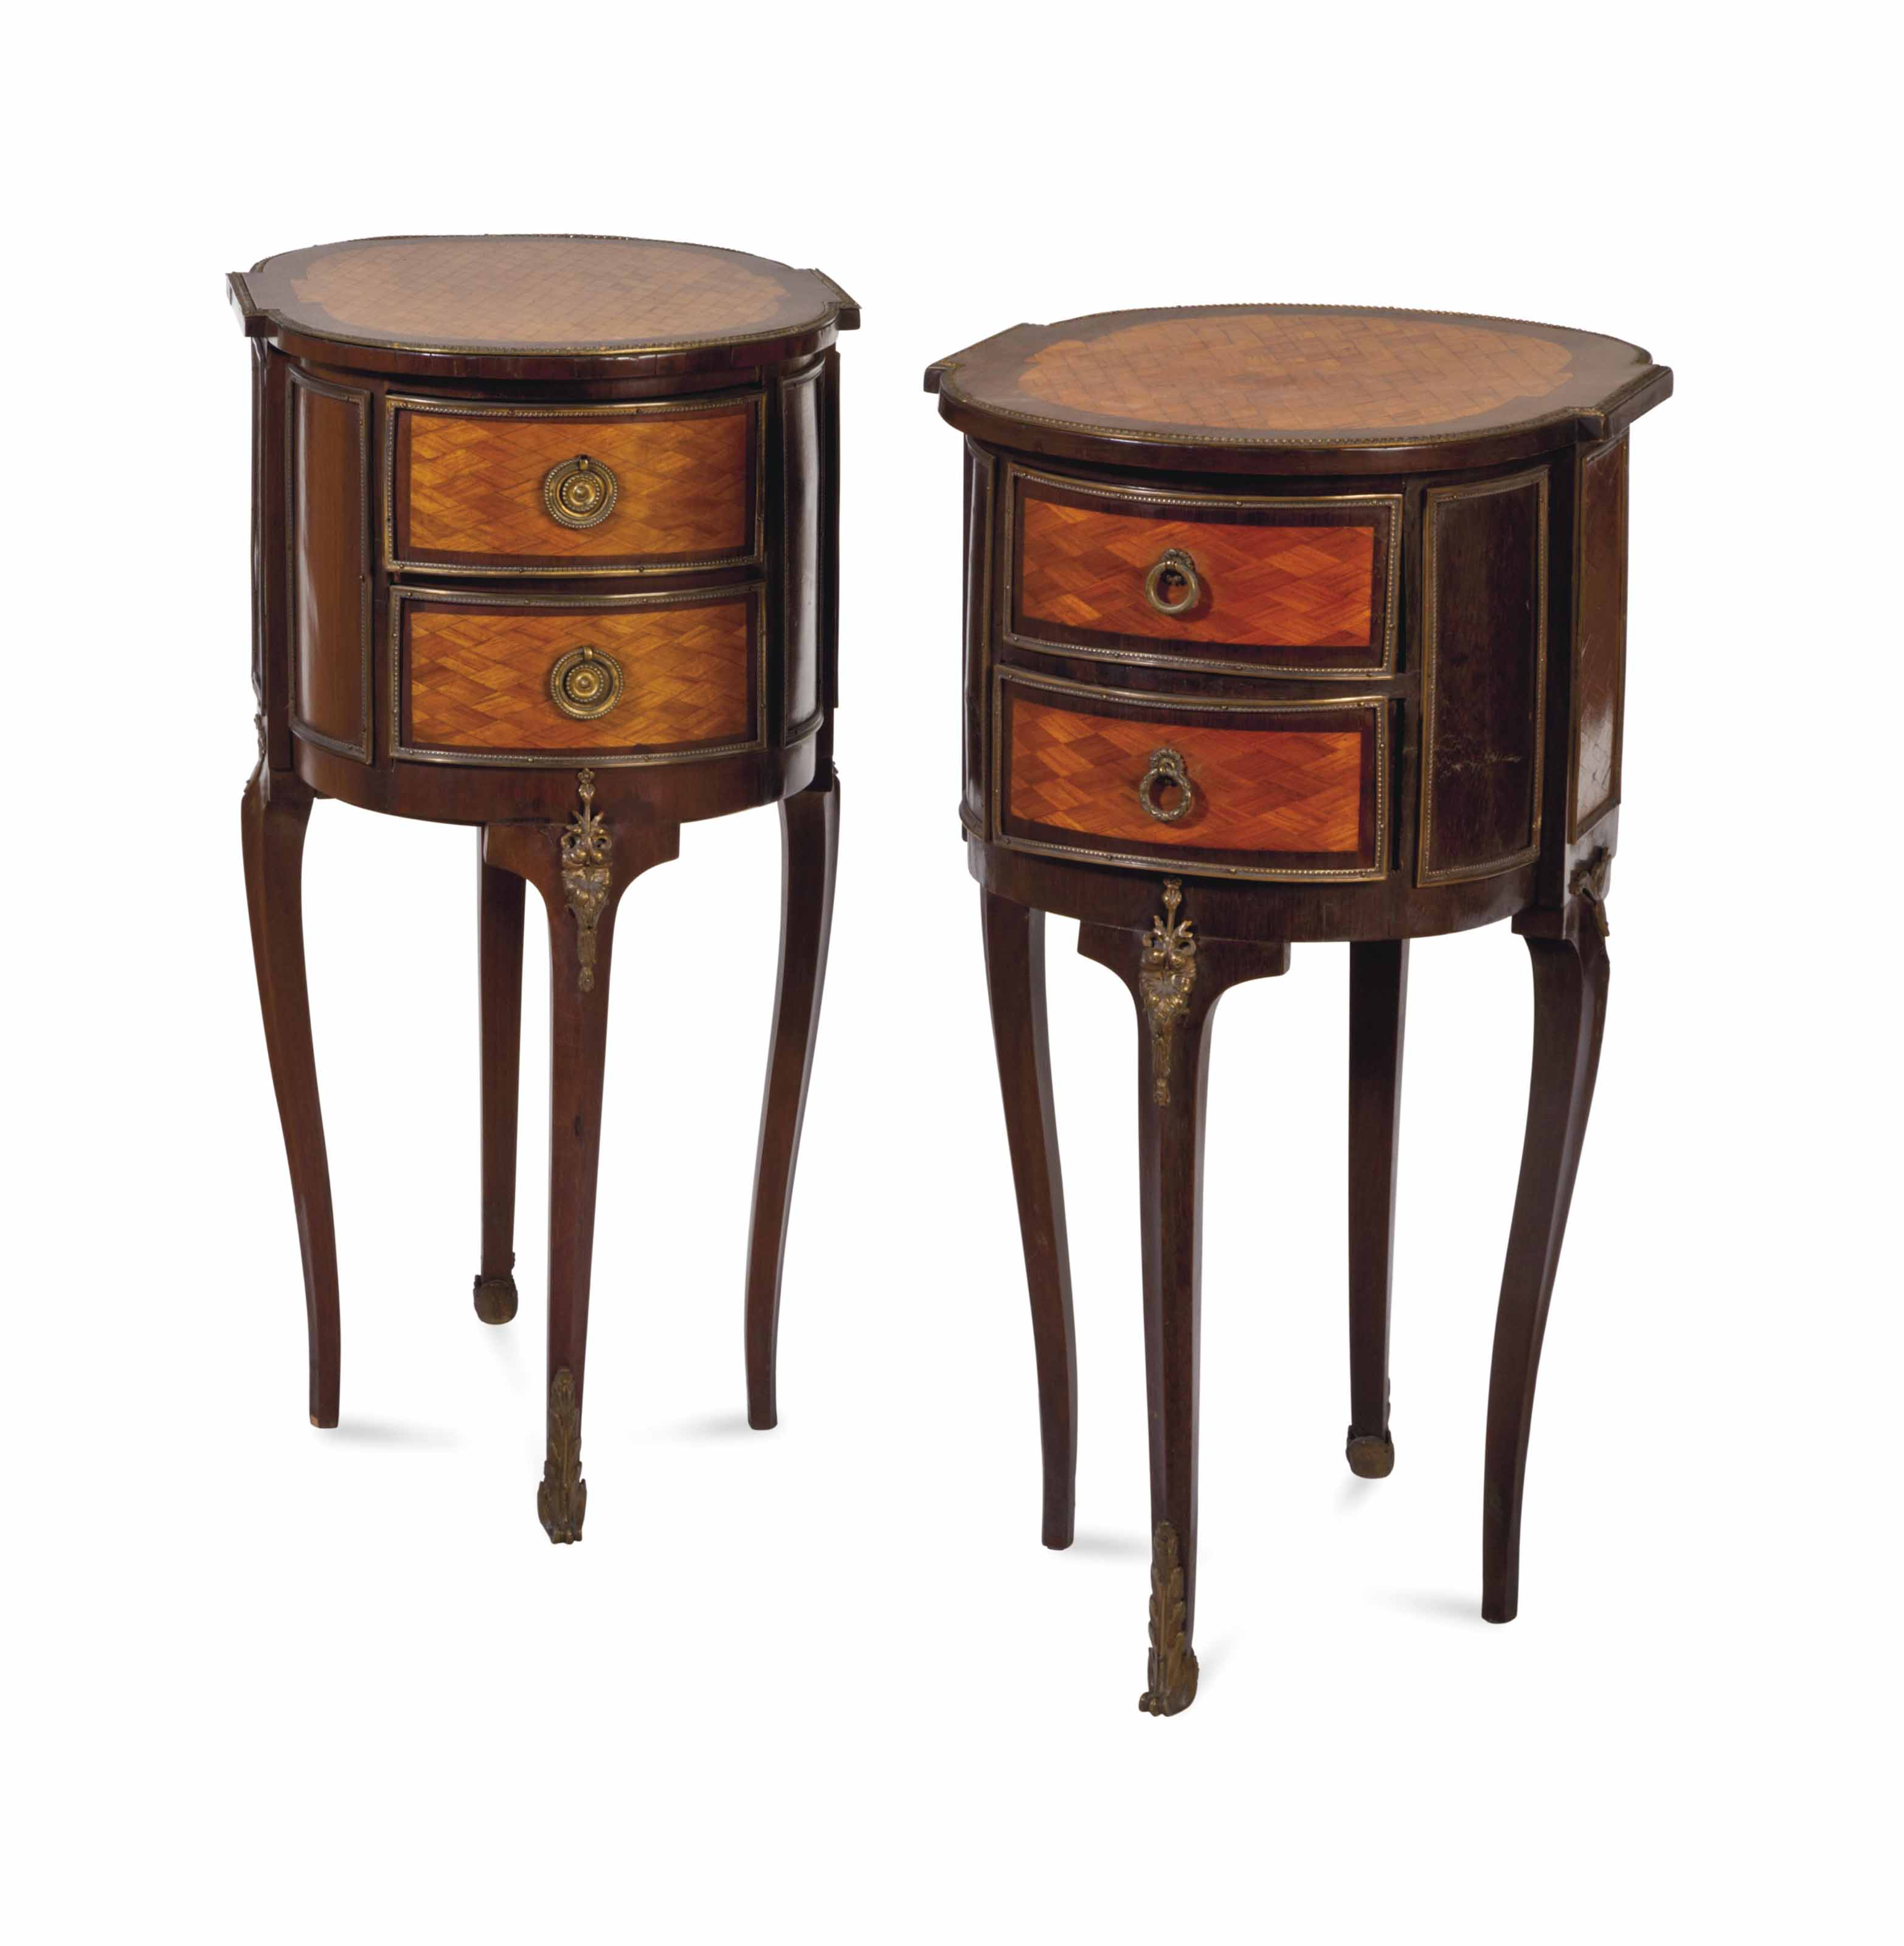 A PAIR OF LOUIS XVI STYLE GILT METAL-MOUNTED KINGWOOD PARQUETRY BEDSIDE TABLES